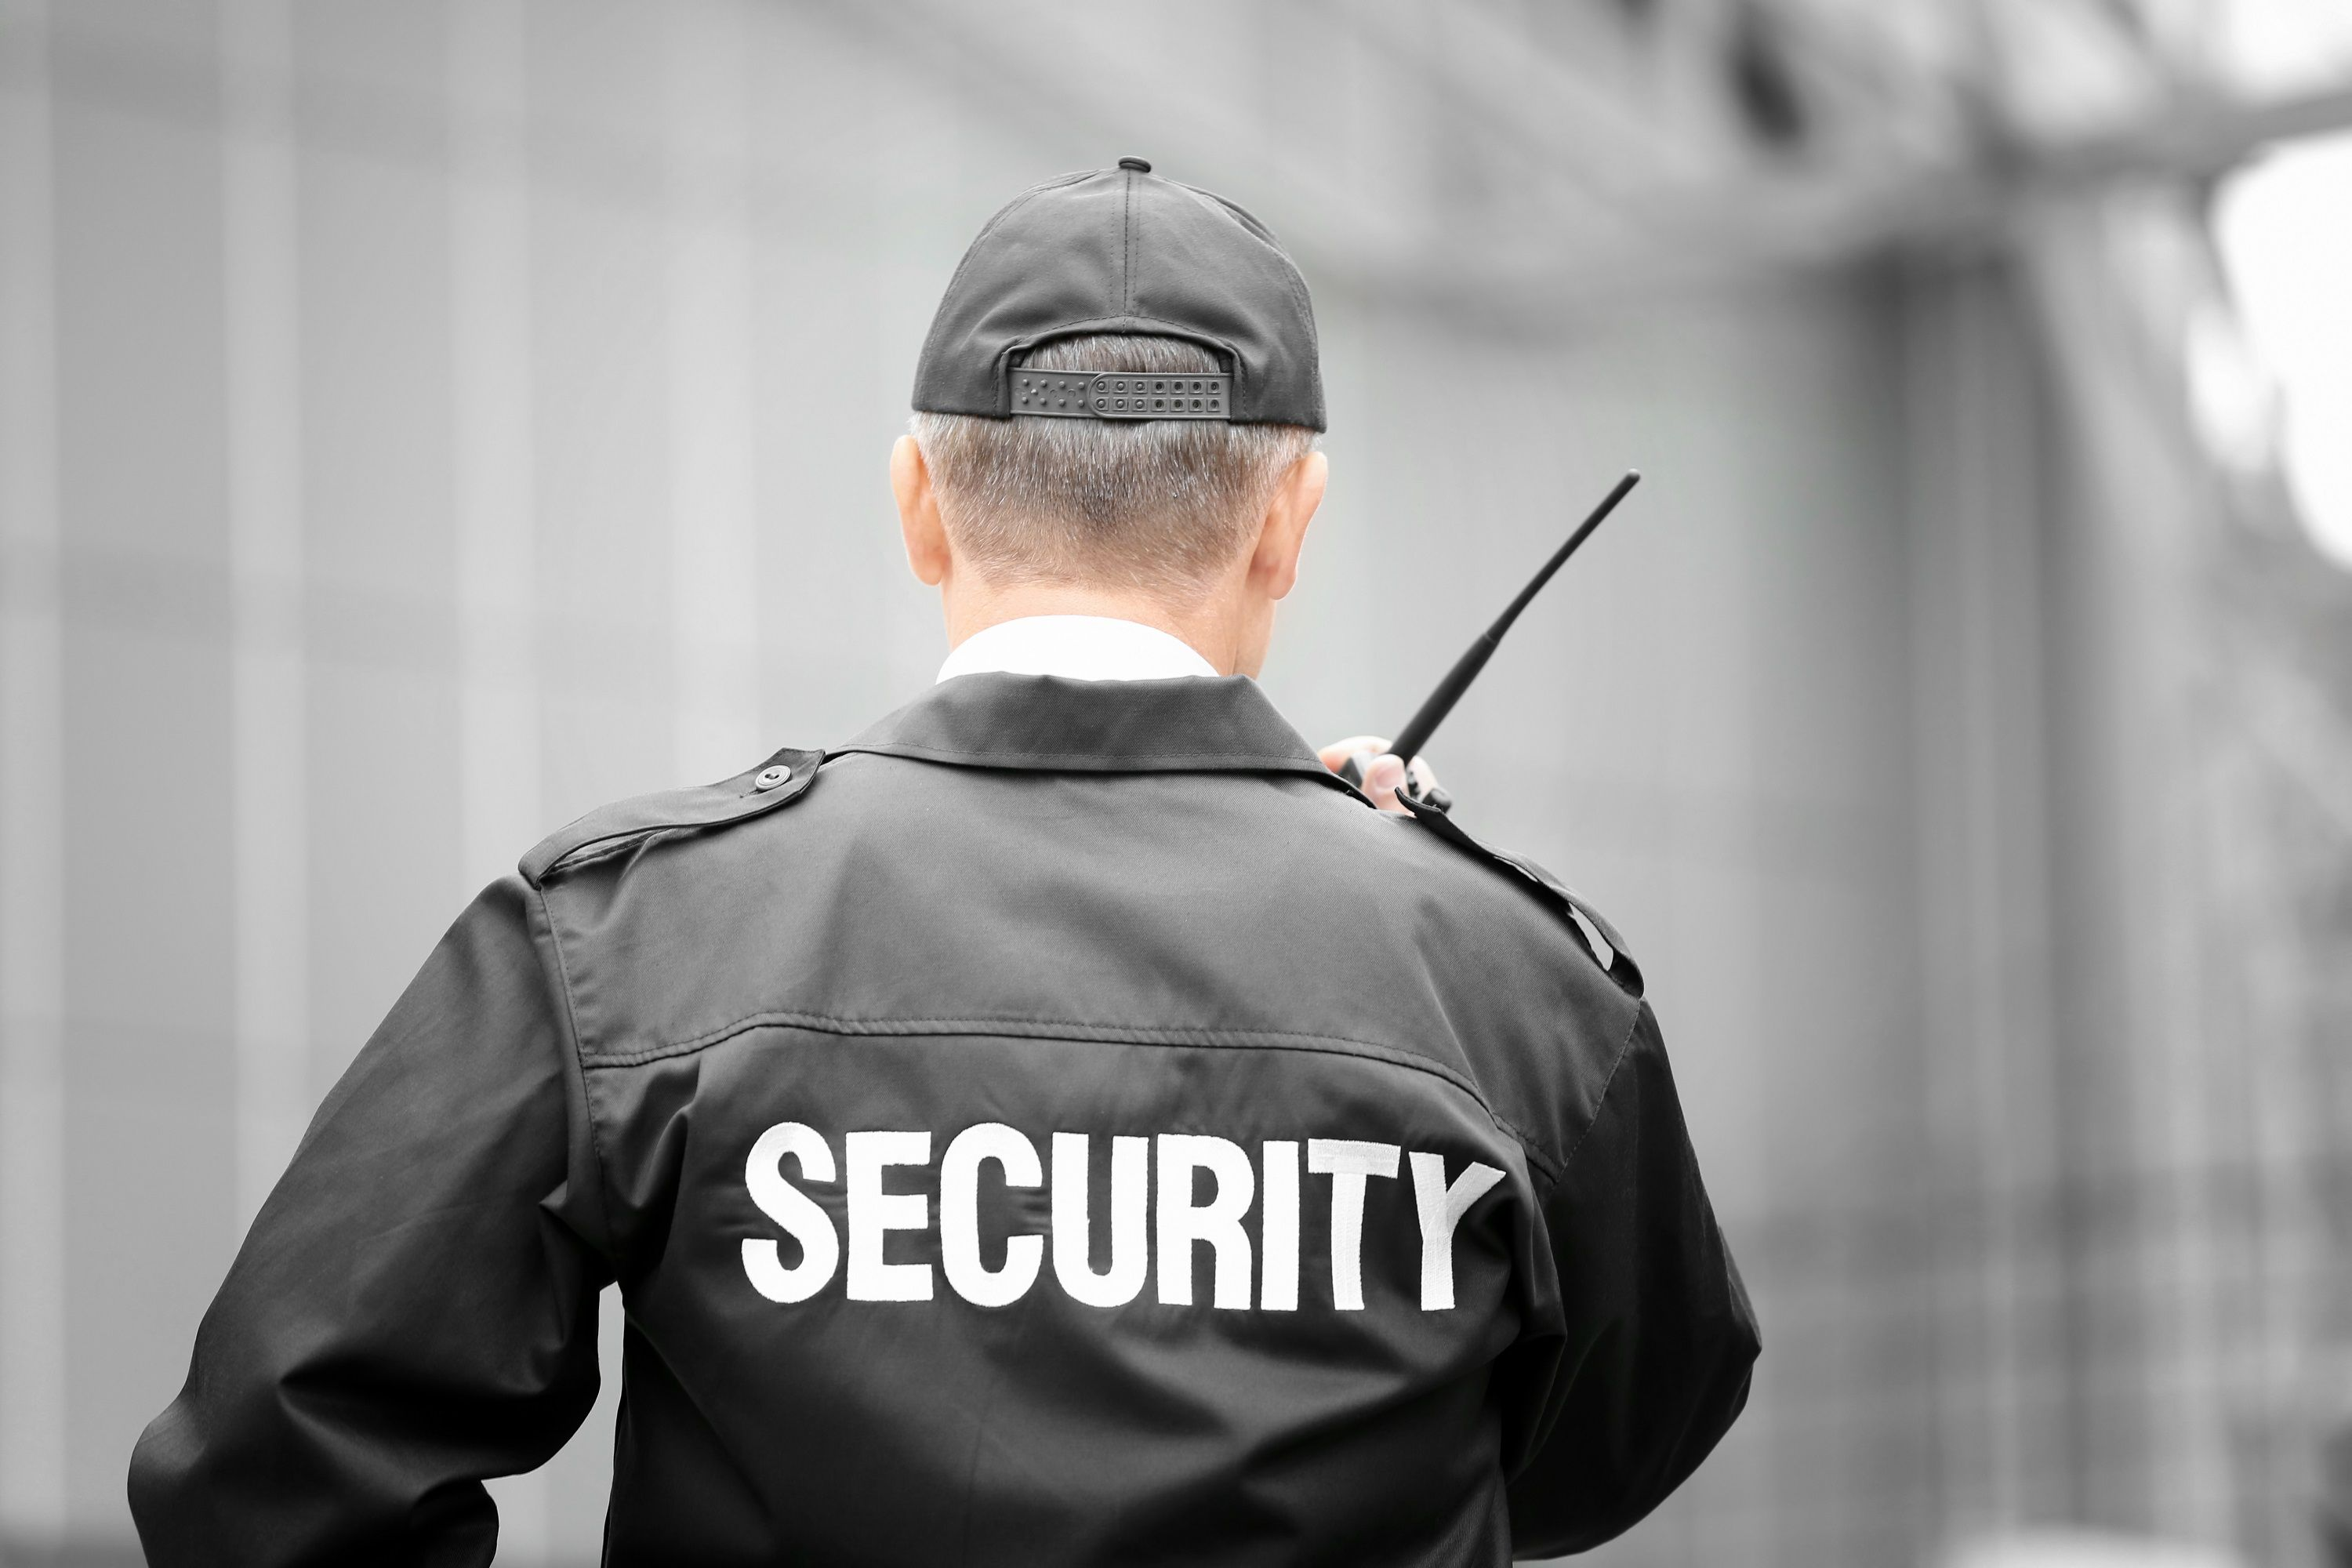 Find a security company that has great leadership and the